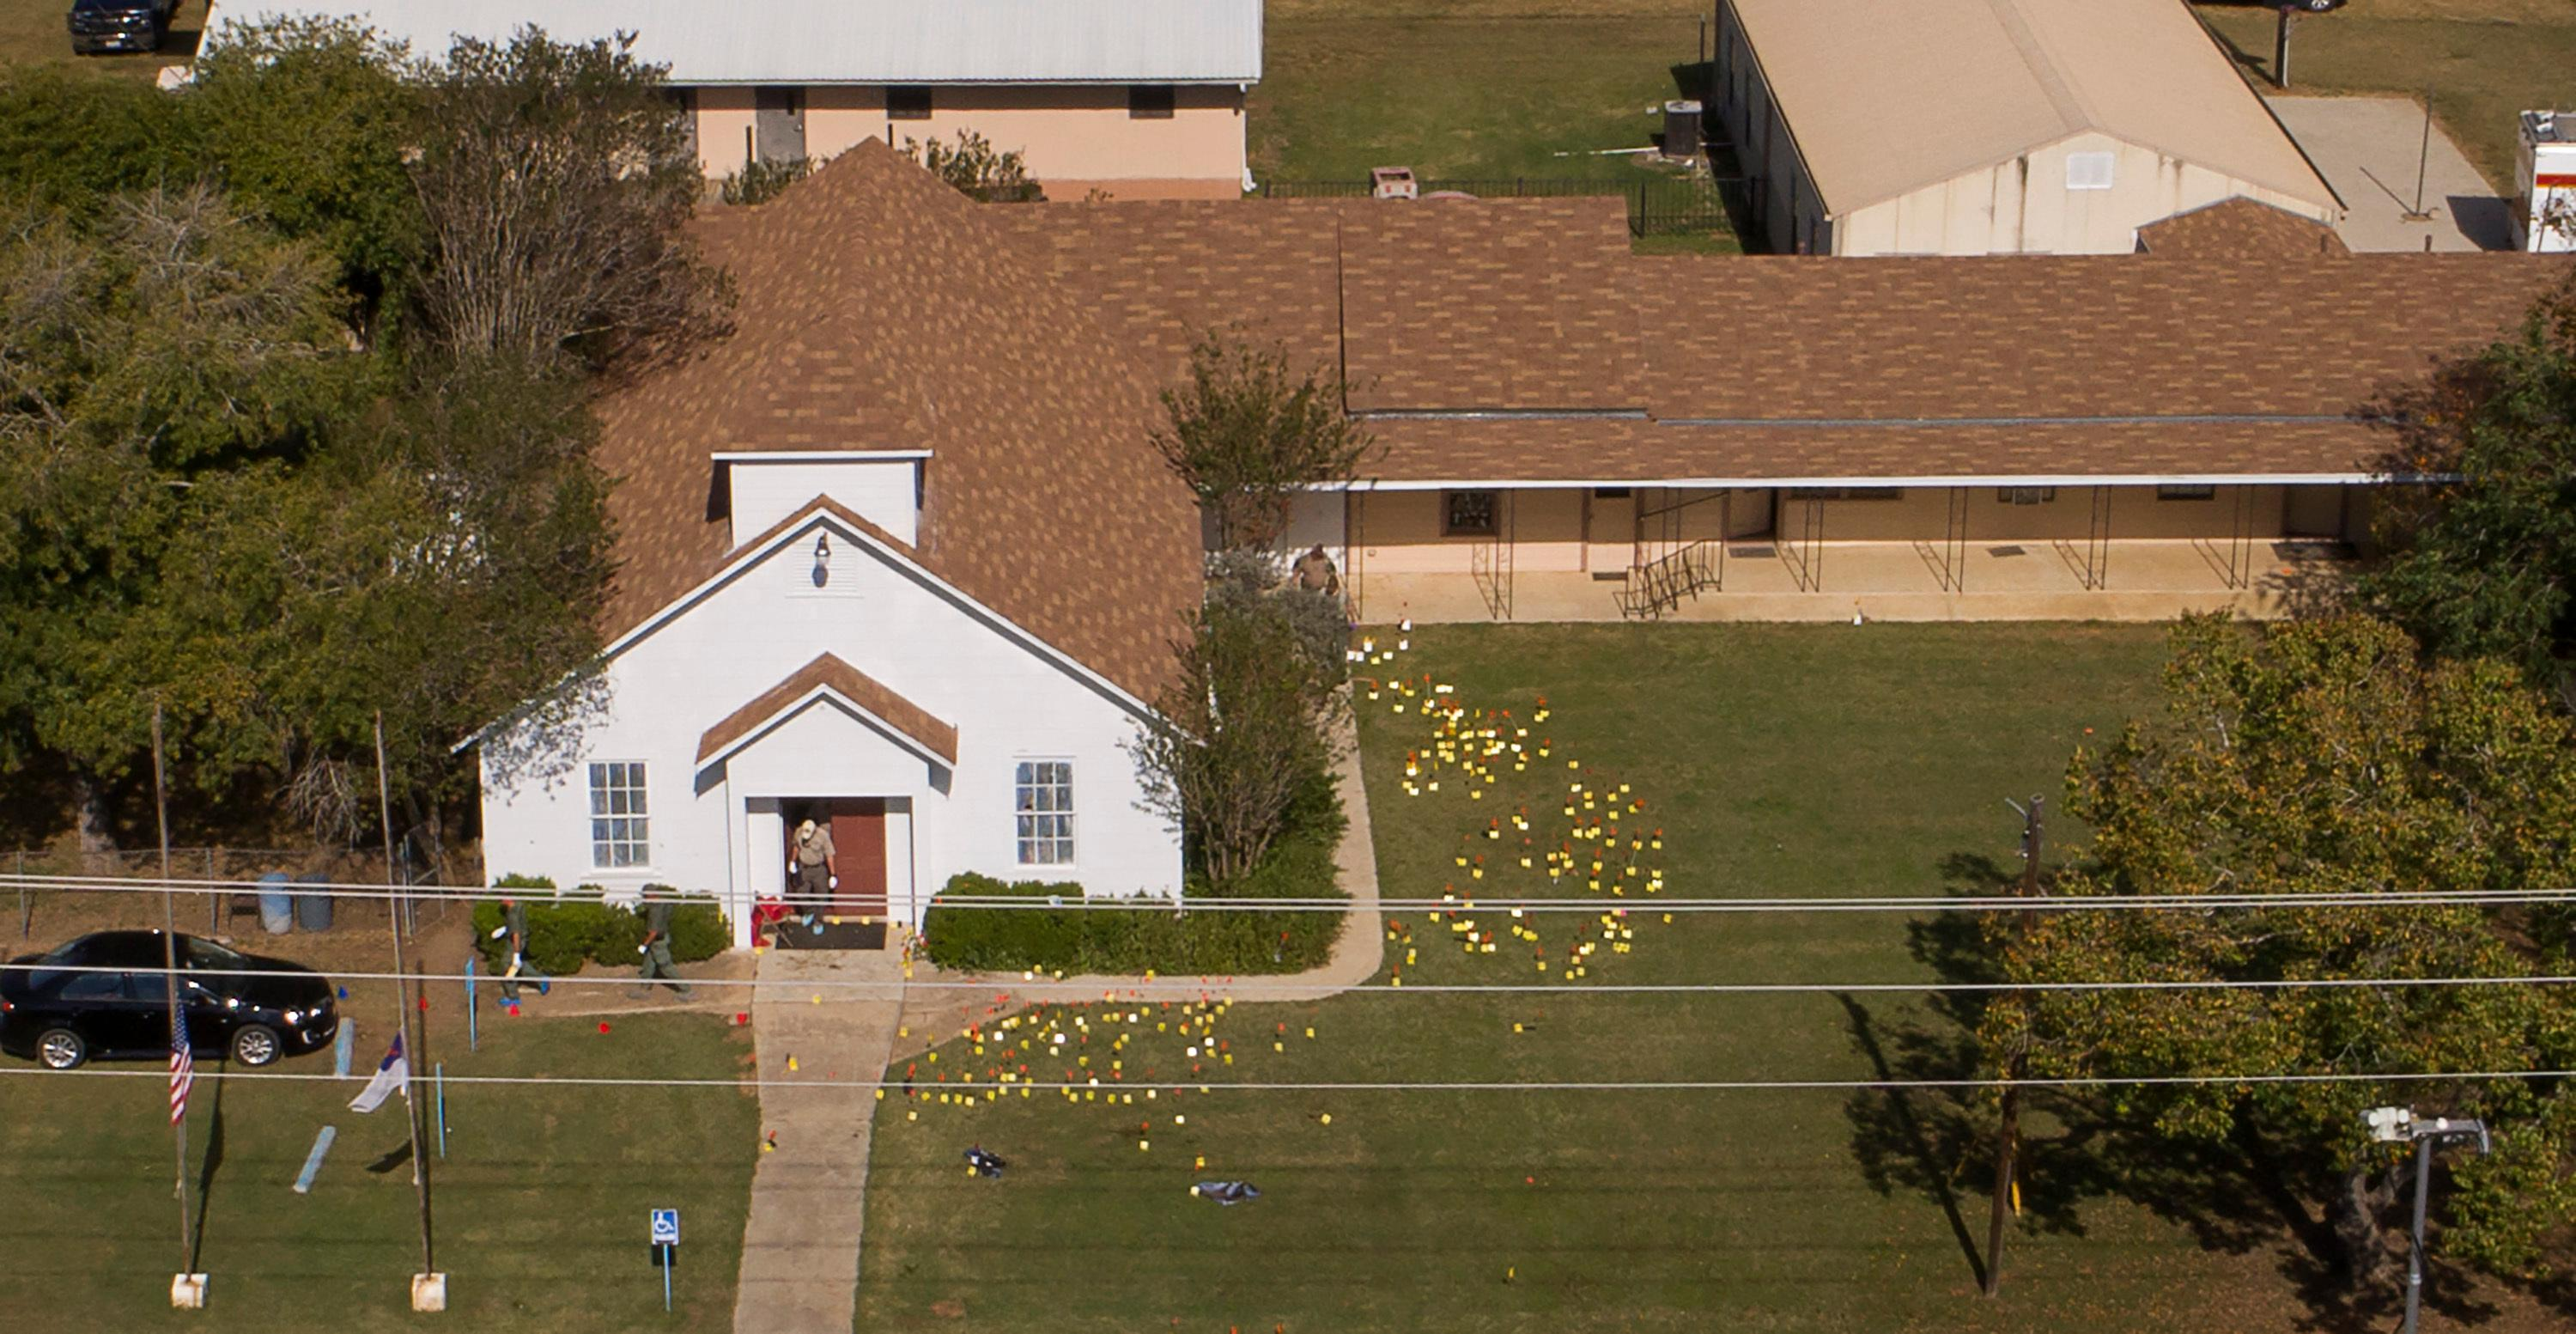 Flags mark evidence on the lawn of the First Baptist Church in Sutherland Springs, Texas, Monday, Nov. 6, 2017, a day after over 20 people died in a mass shooting Sunday. (Jay Janner/Austin American-Statesman via AP)